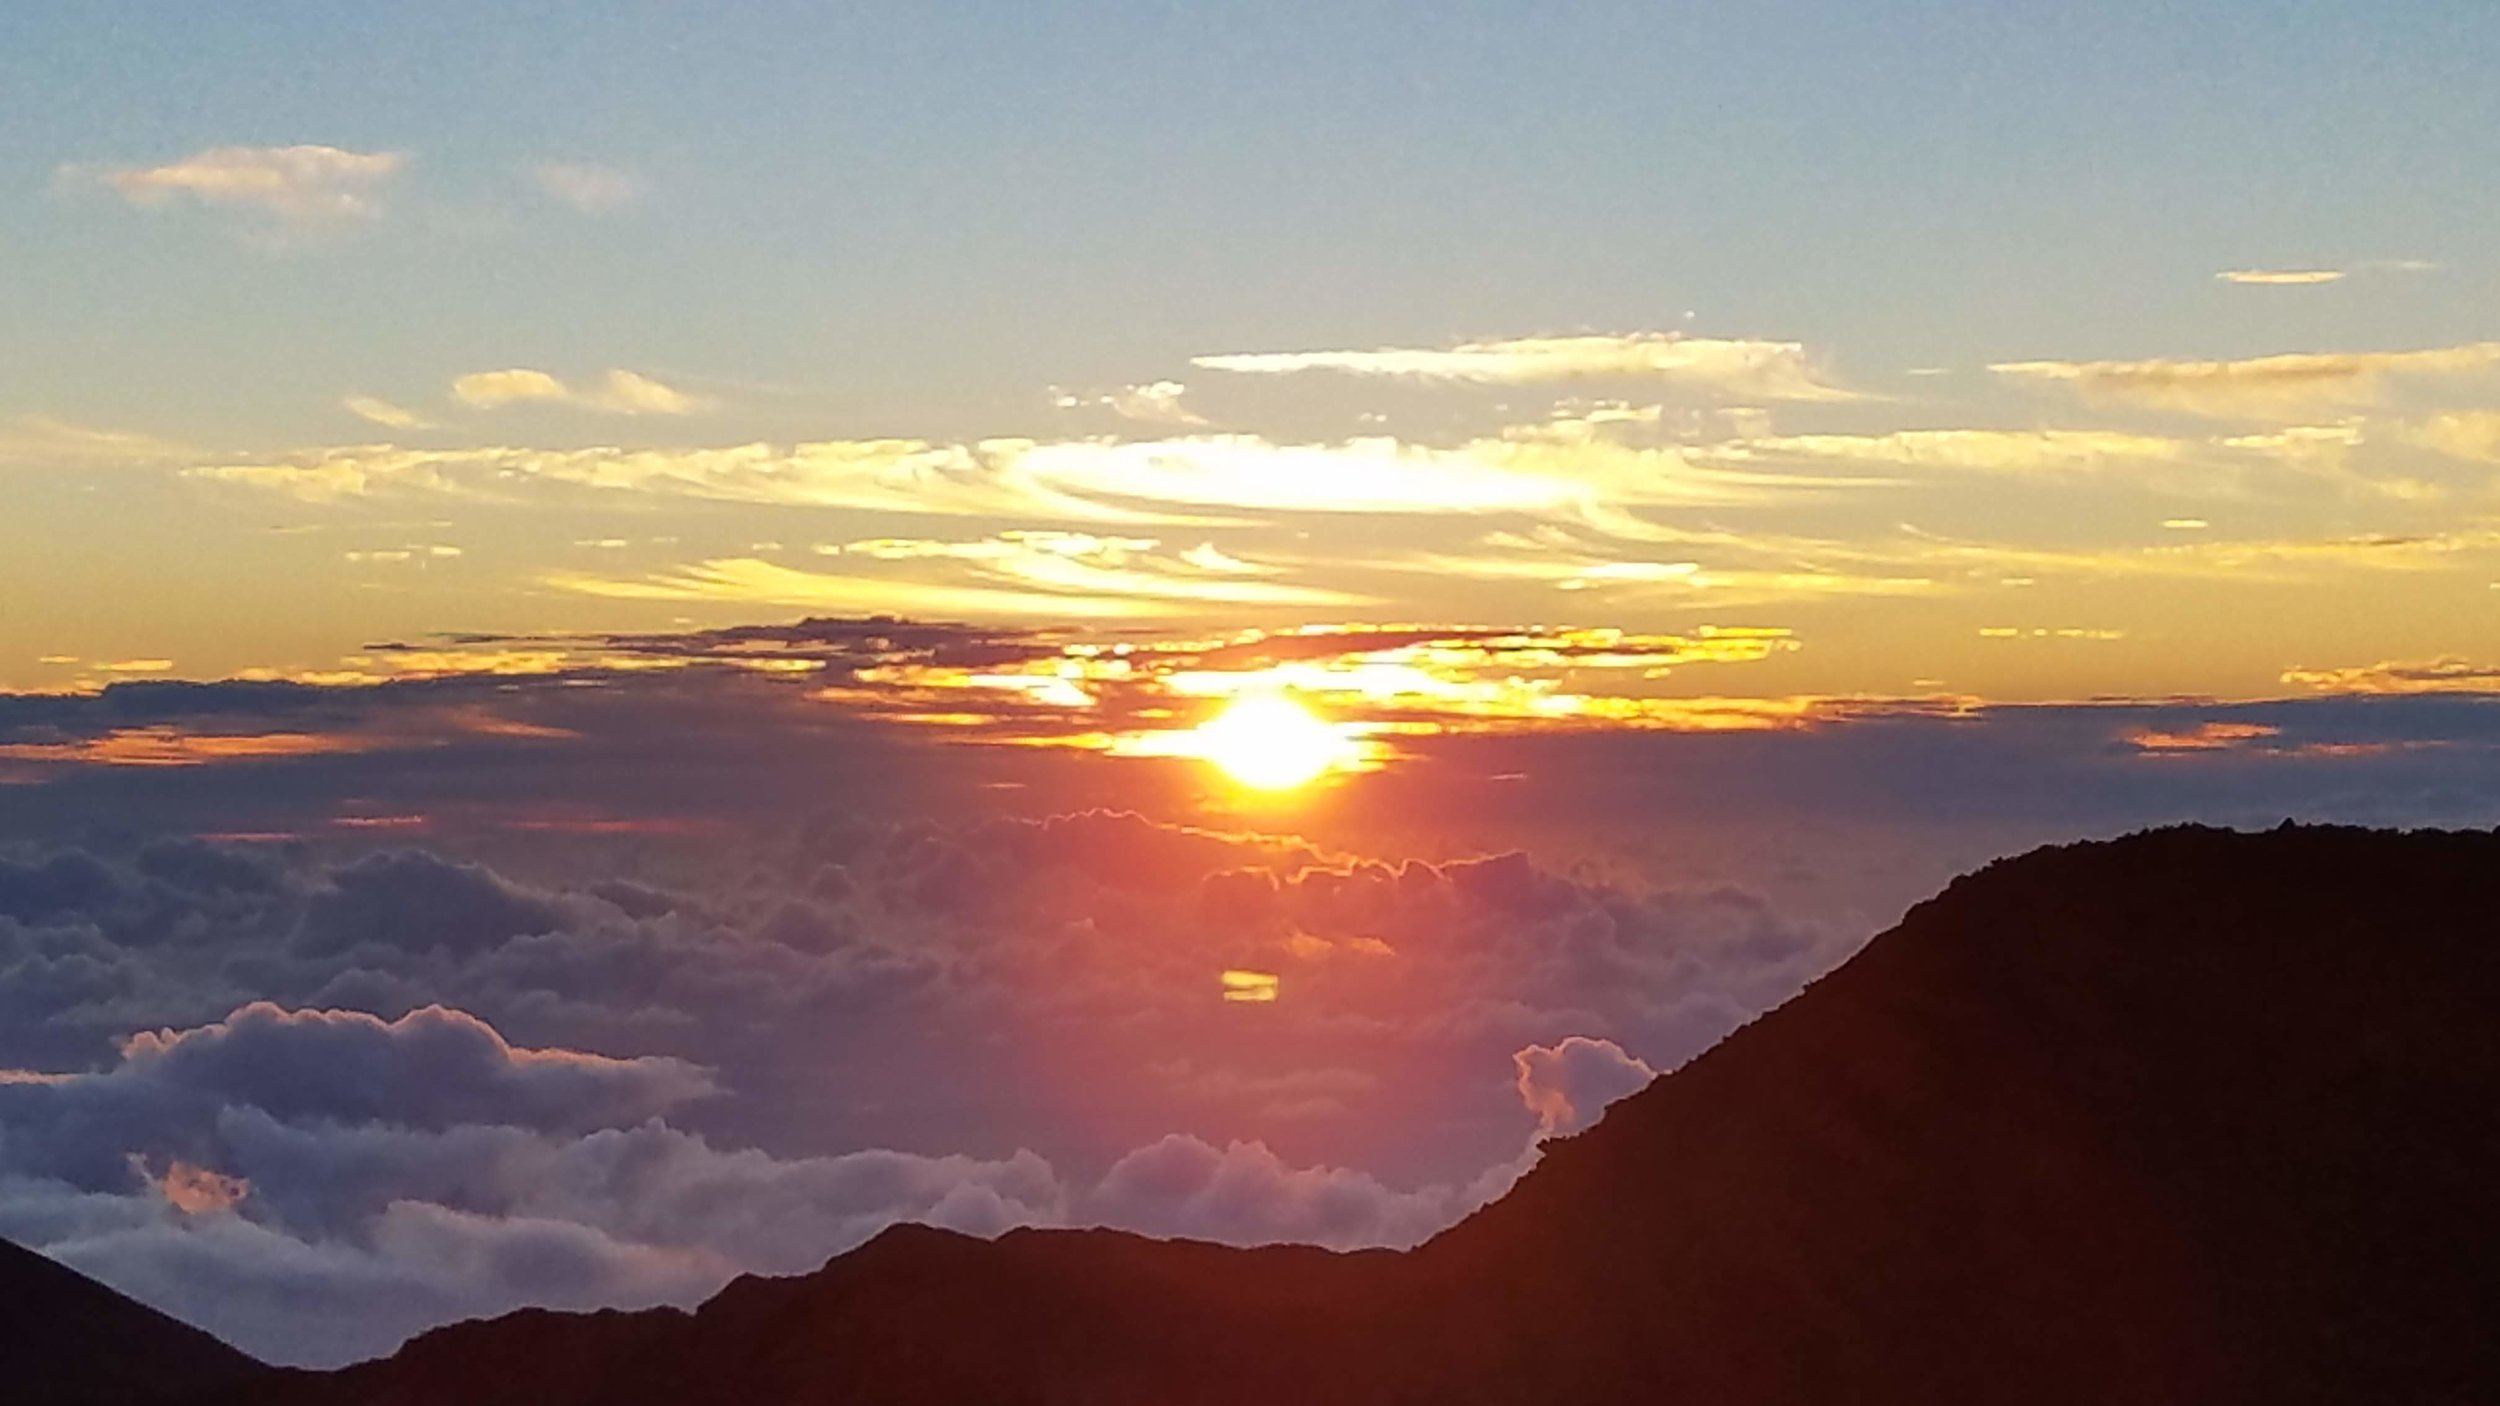 The Haleakala National Park sunrise peaks above the clouds around the Haleakala summit.